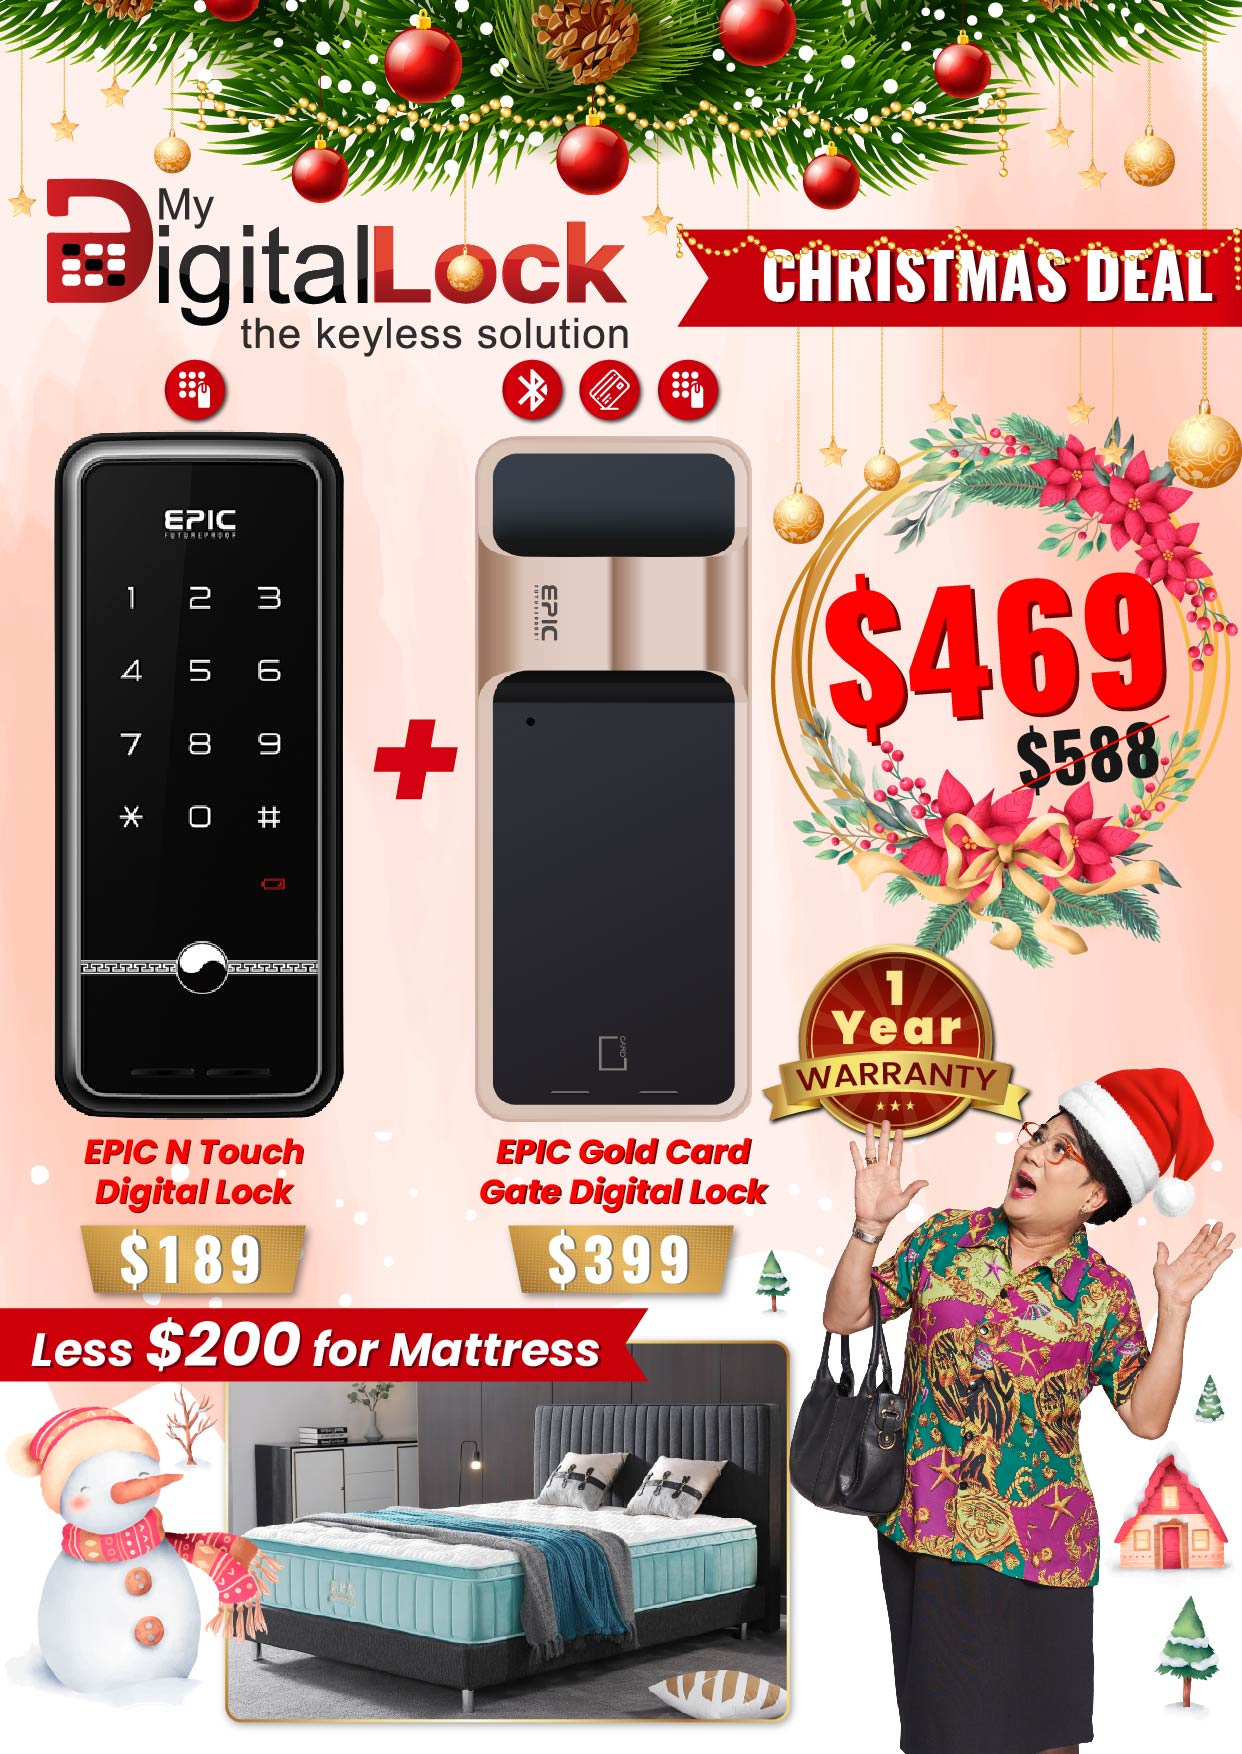 My Digital Lock EPIC N Touch and Gold Card Gate Digital Lock Christmas Promotion 2019